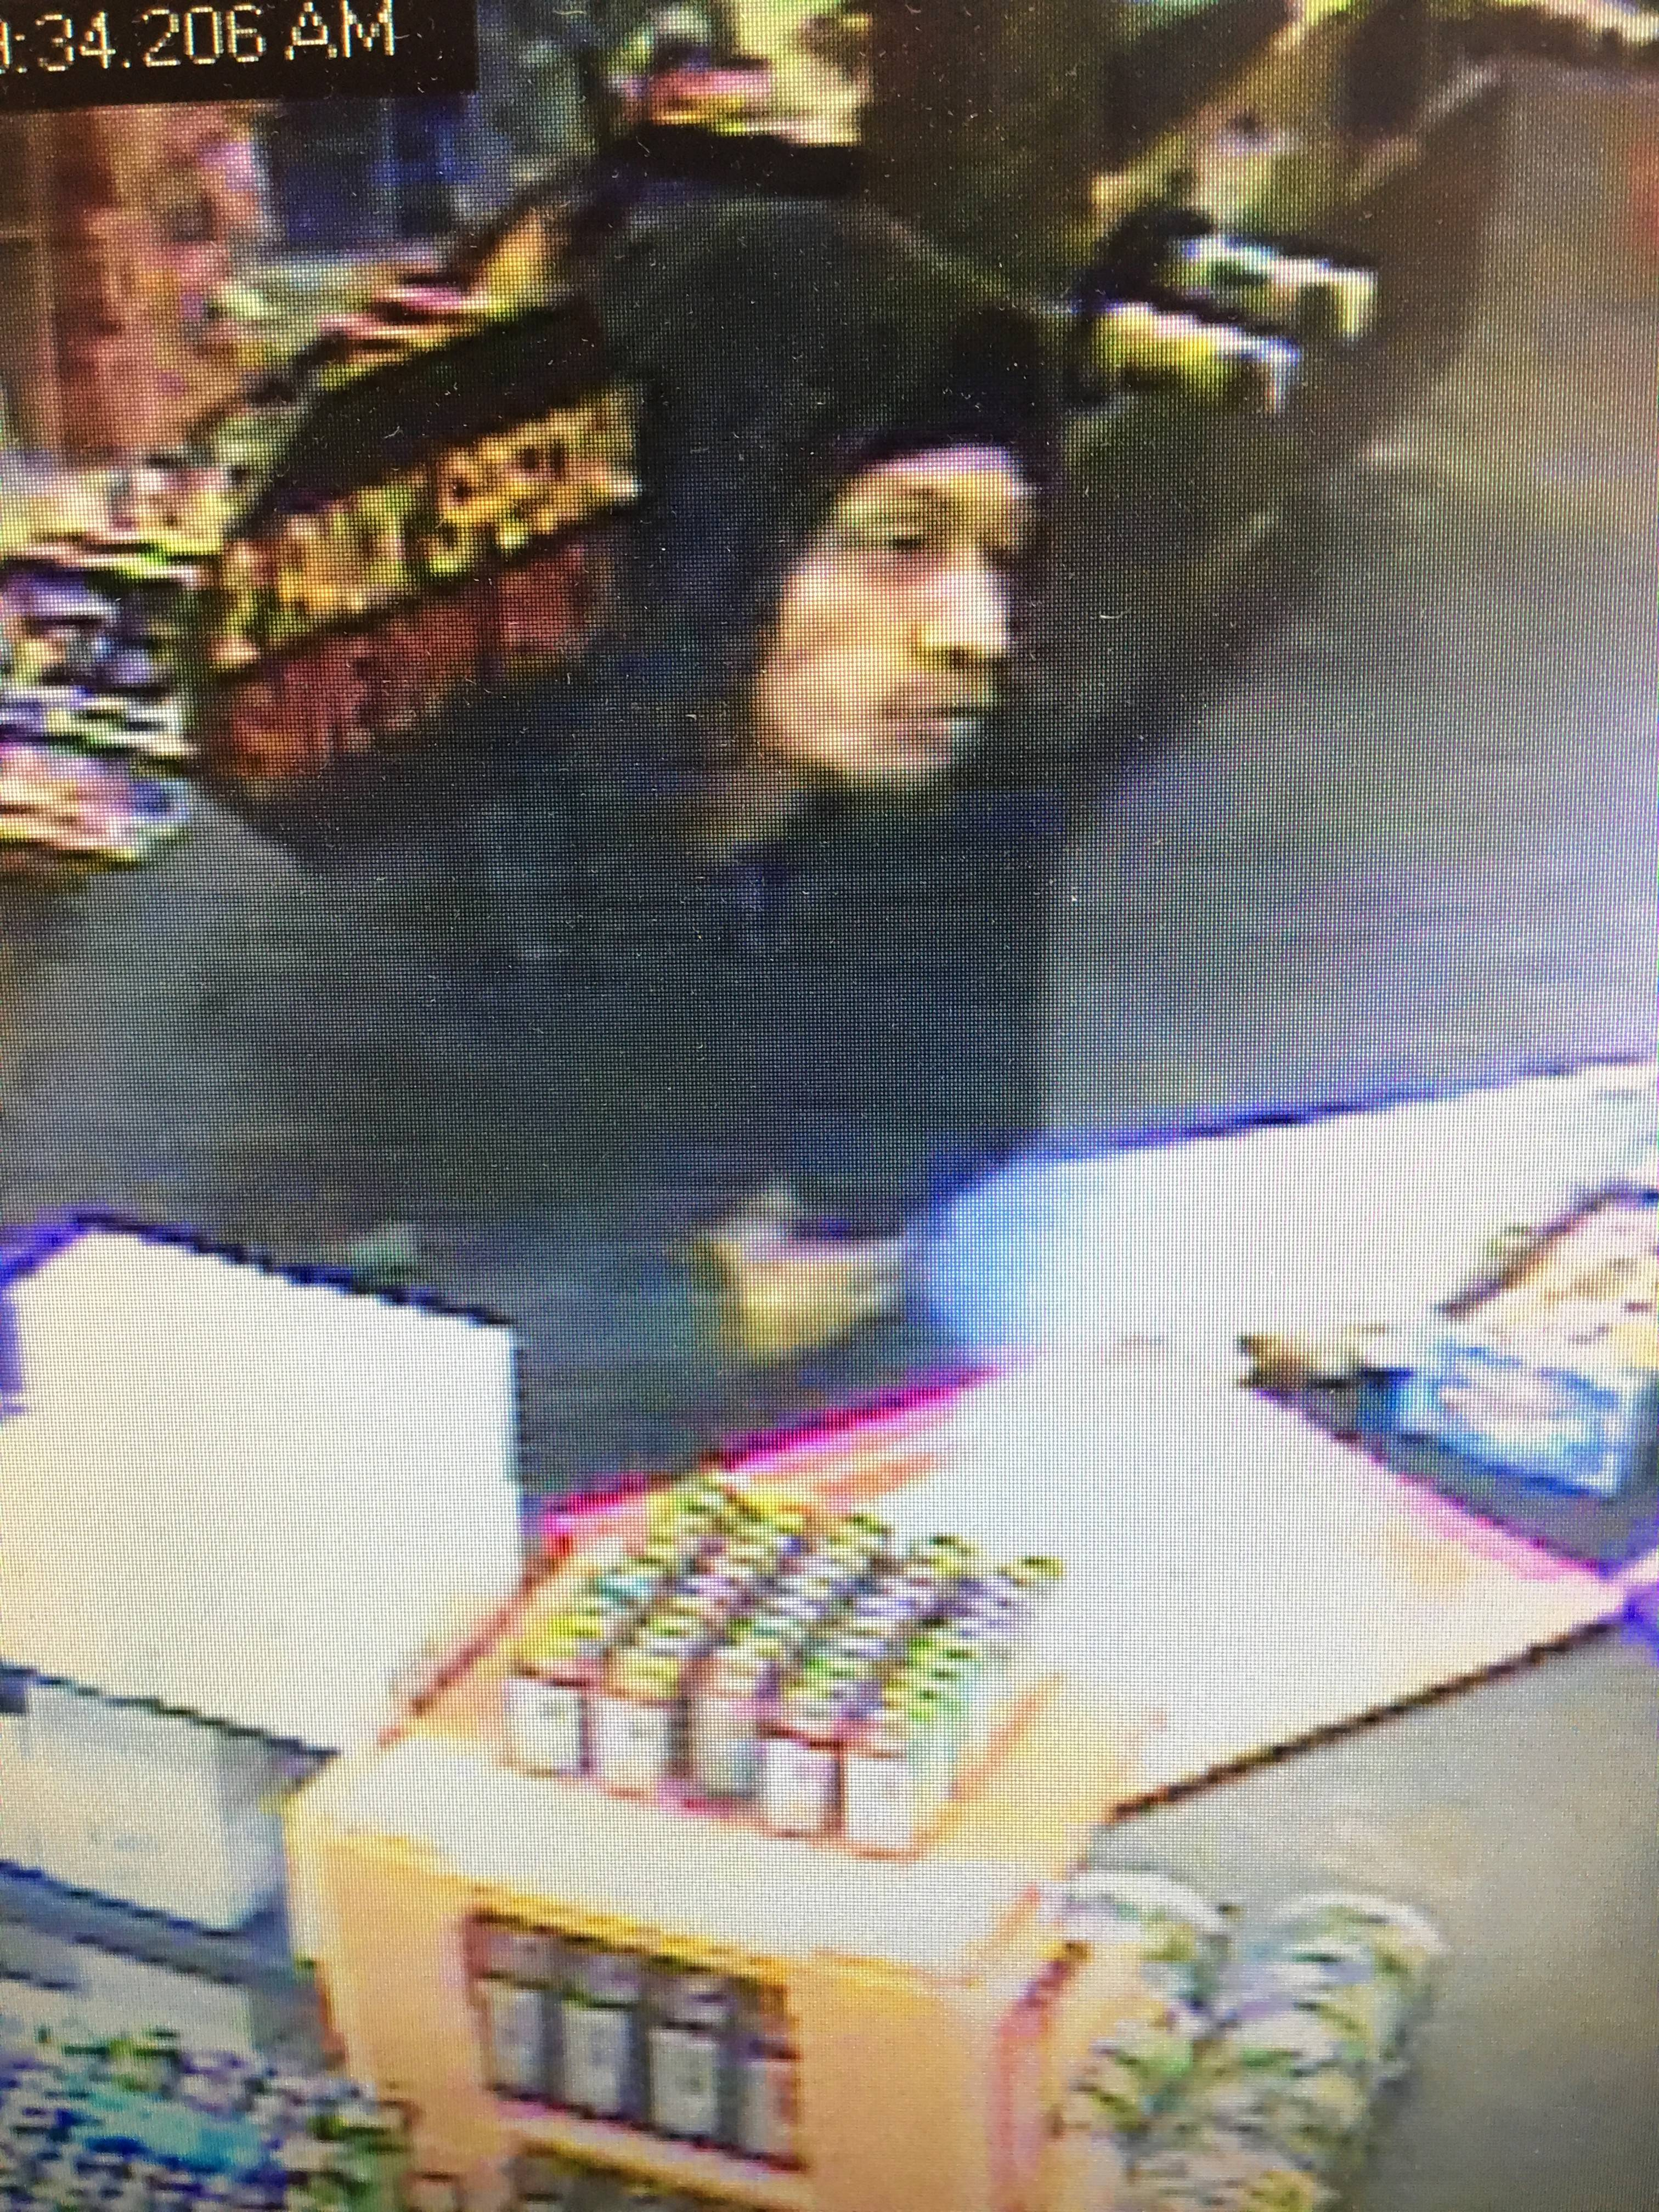 Authorities identified Gil Orlando Melendez as the man captured on a security camera while robbing a gas station on the 28700 block of North Waukegan Road in Shields Township.